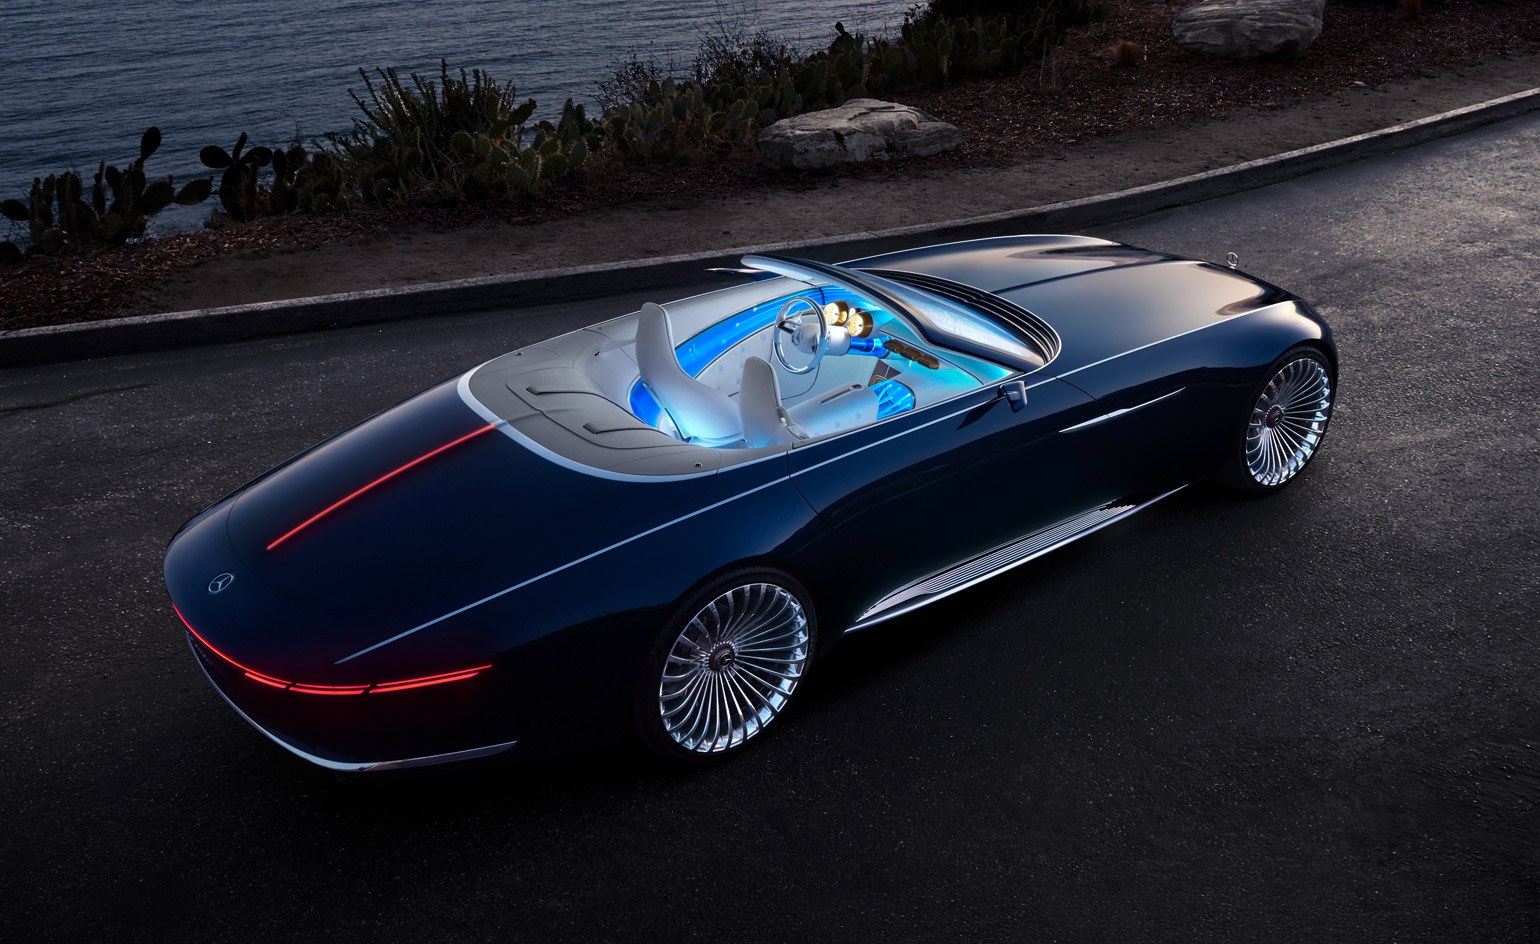 first look: the vision mercedes-maybach 6 cabriolet | wallpaper*